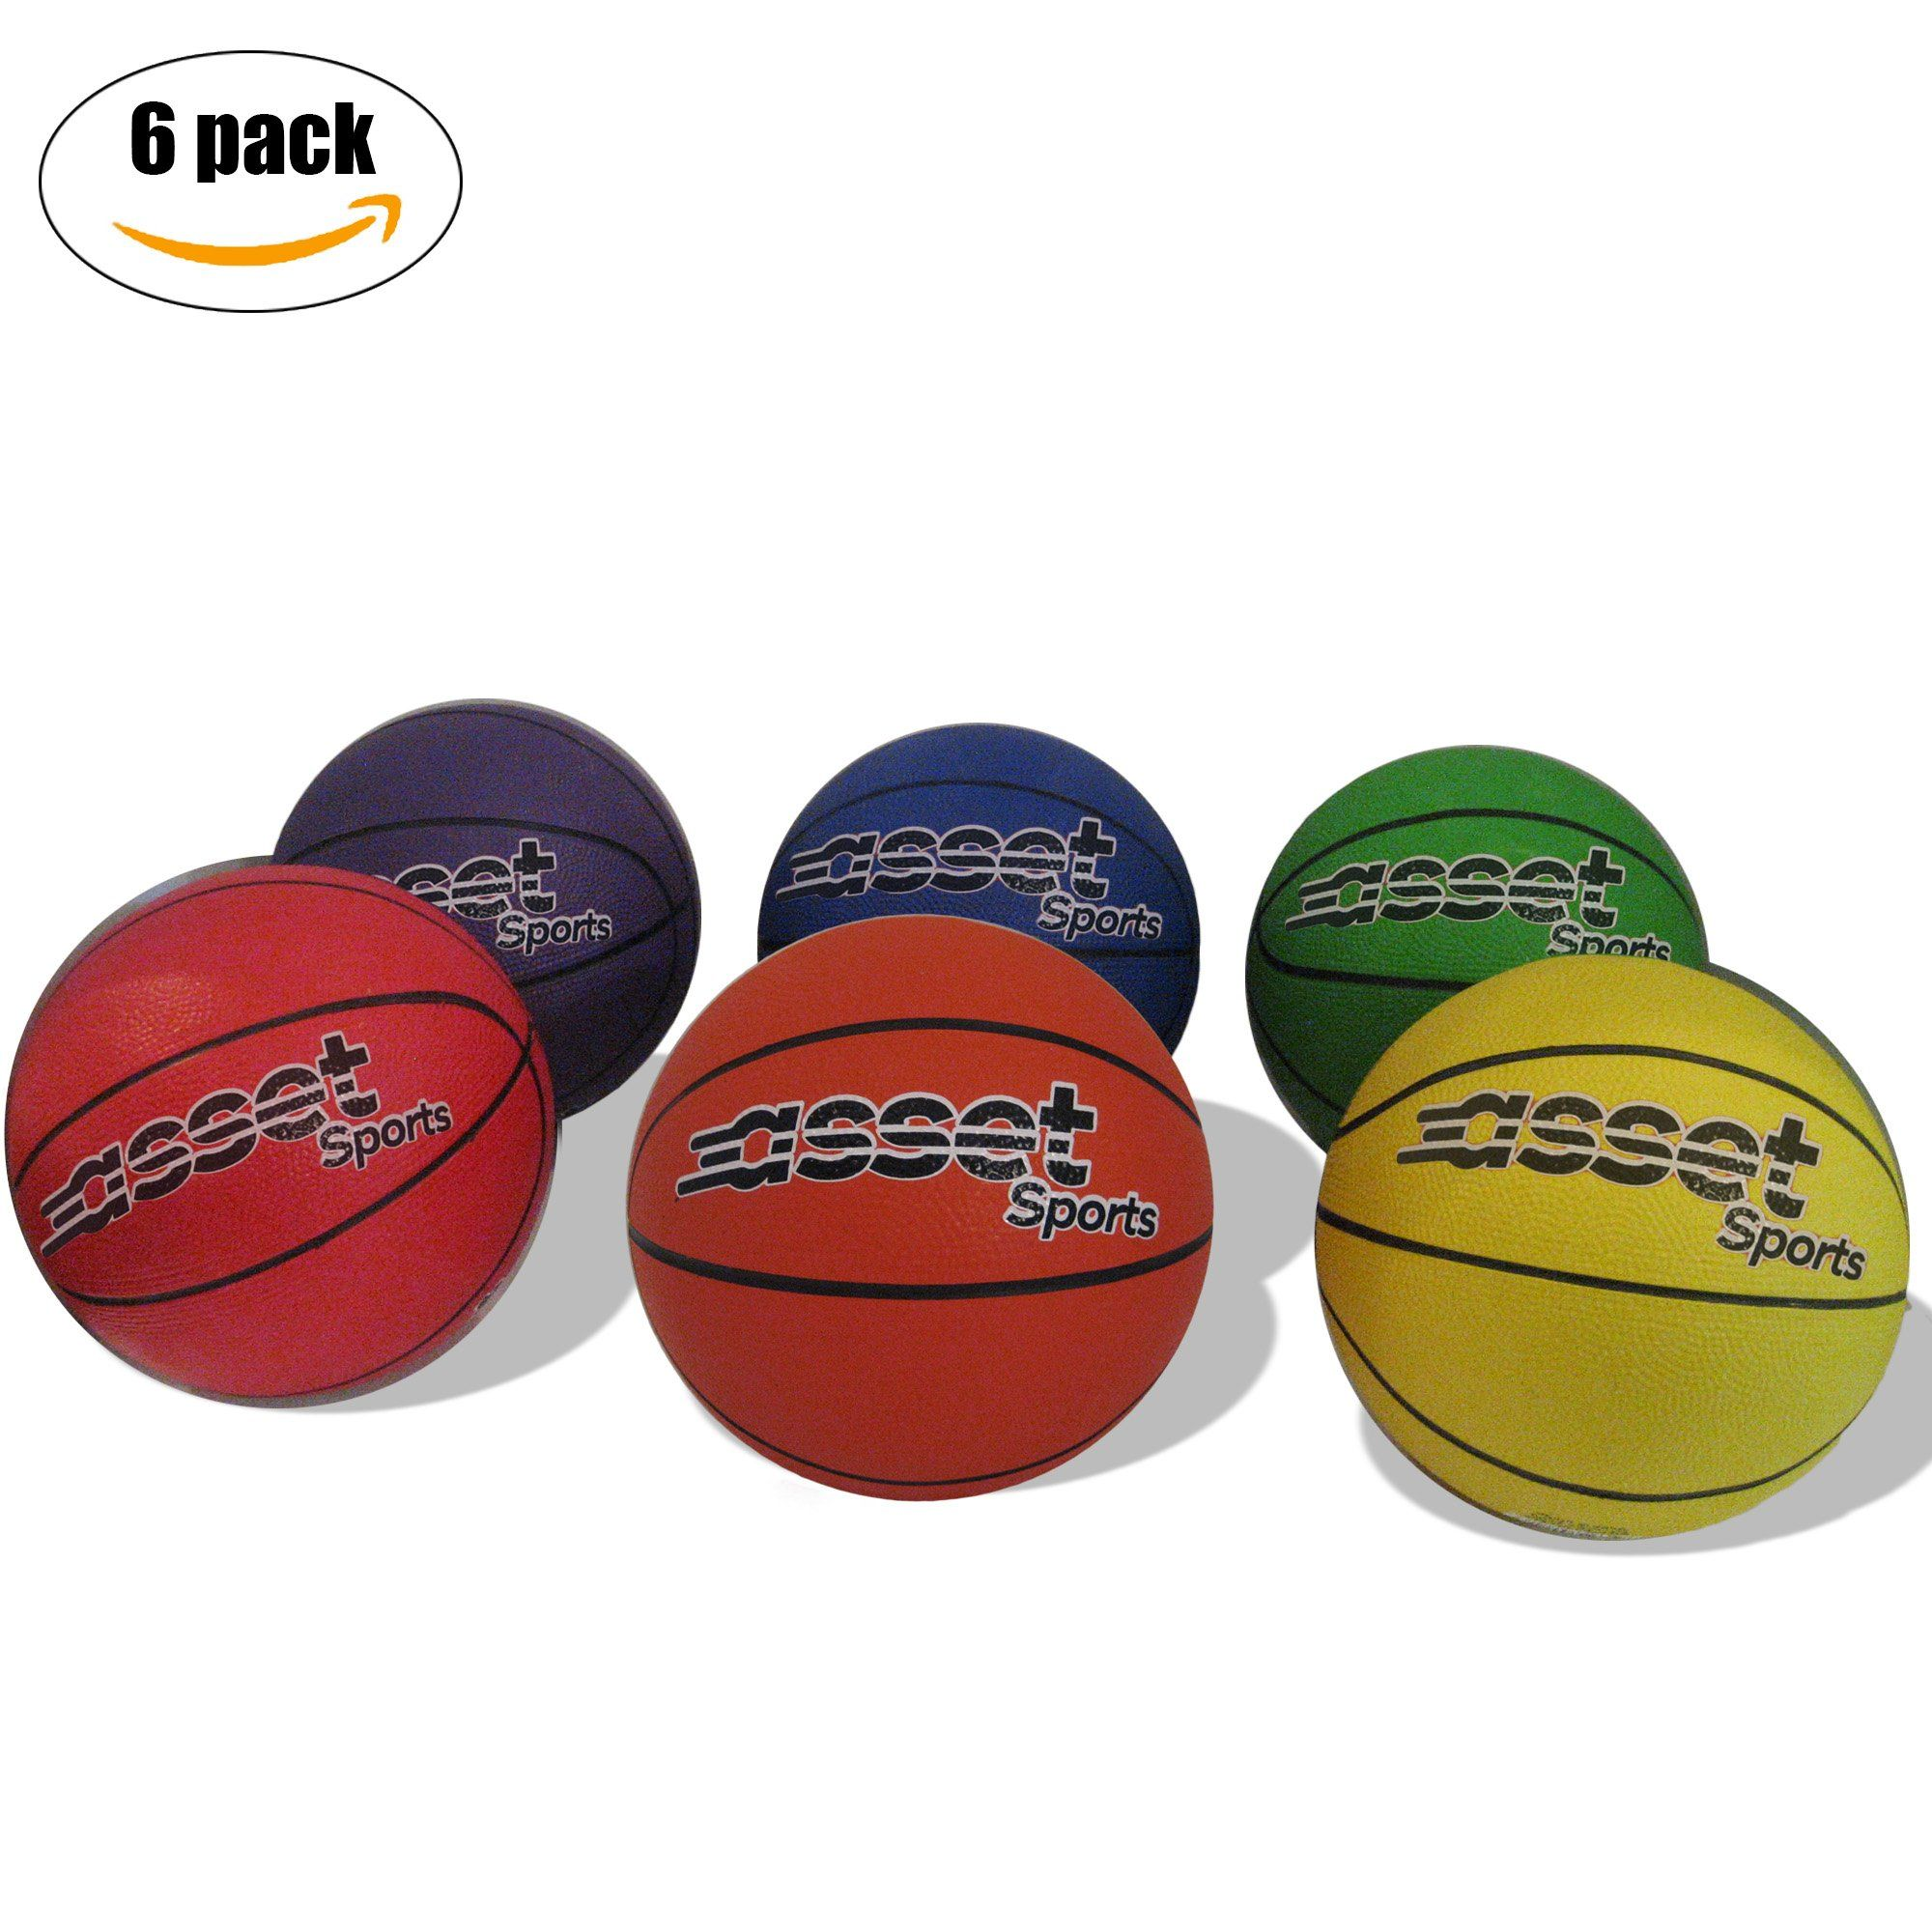 Asset Sports Premium Mini Arcade Basketballs Hours Of Fun For Kids Indoor Outdoor Games In The Swimming Pool Basketba Arcade Basketball Mini Arcade Sports